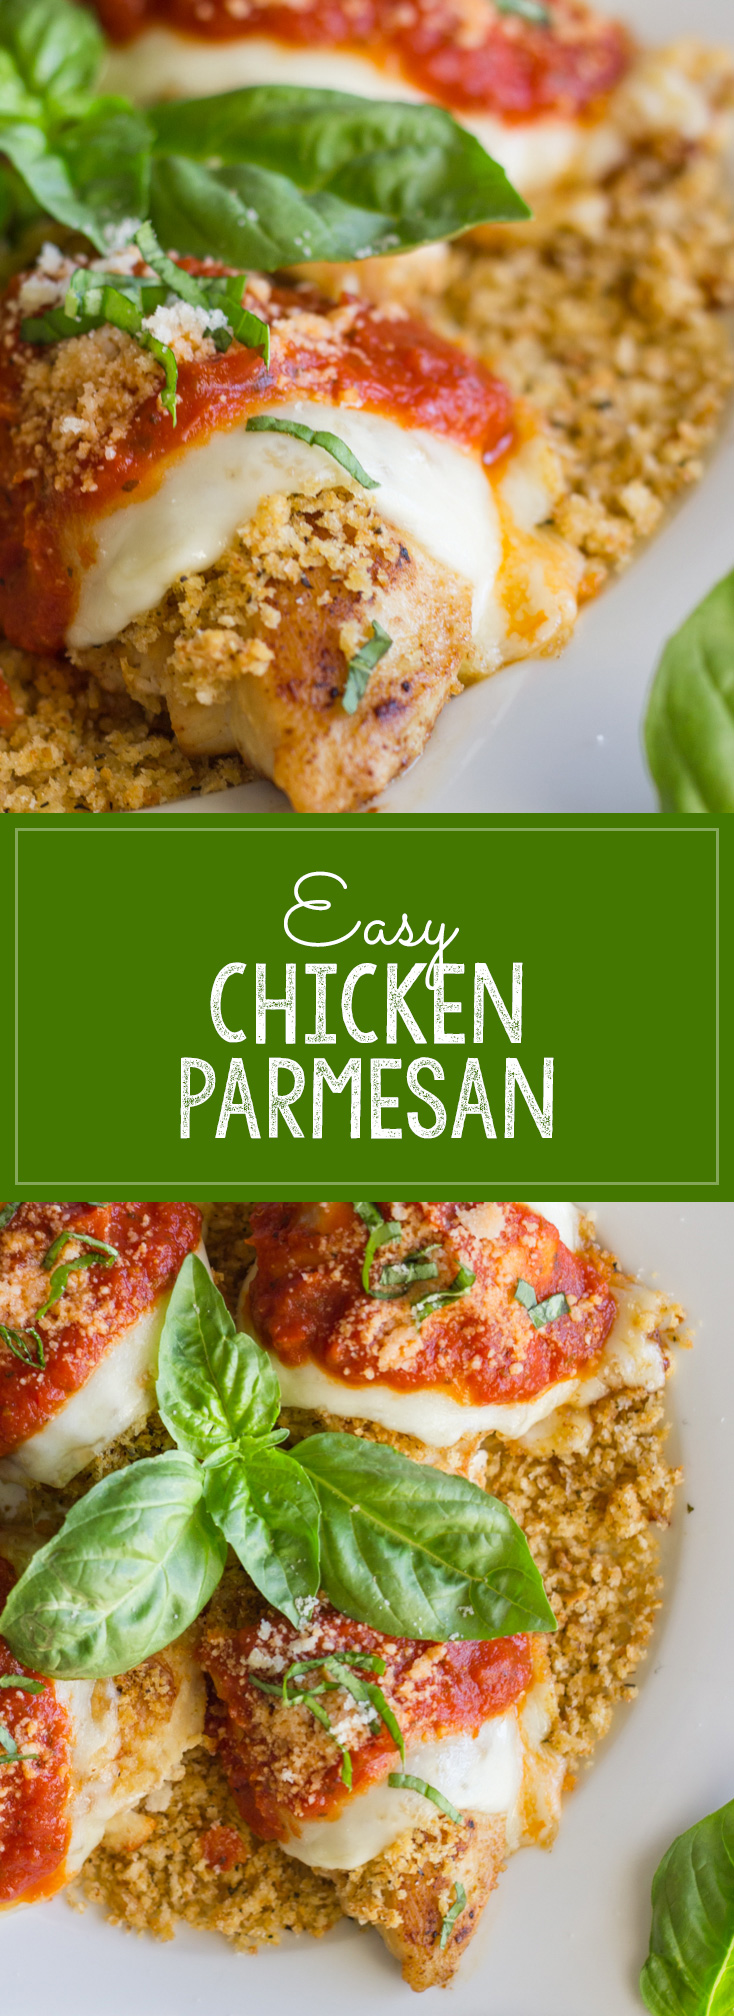 Classic Chicken Parmesan flavor made easier with a tasty shortcut!